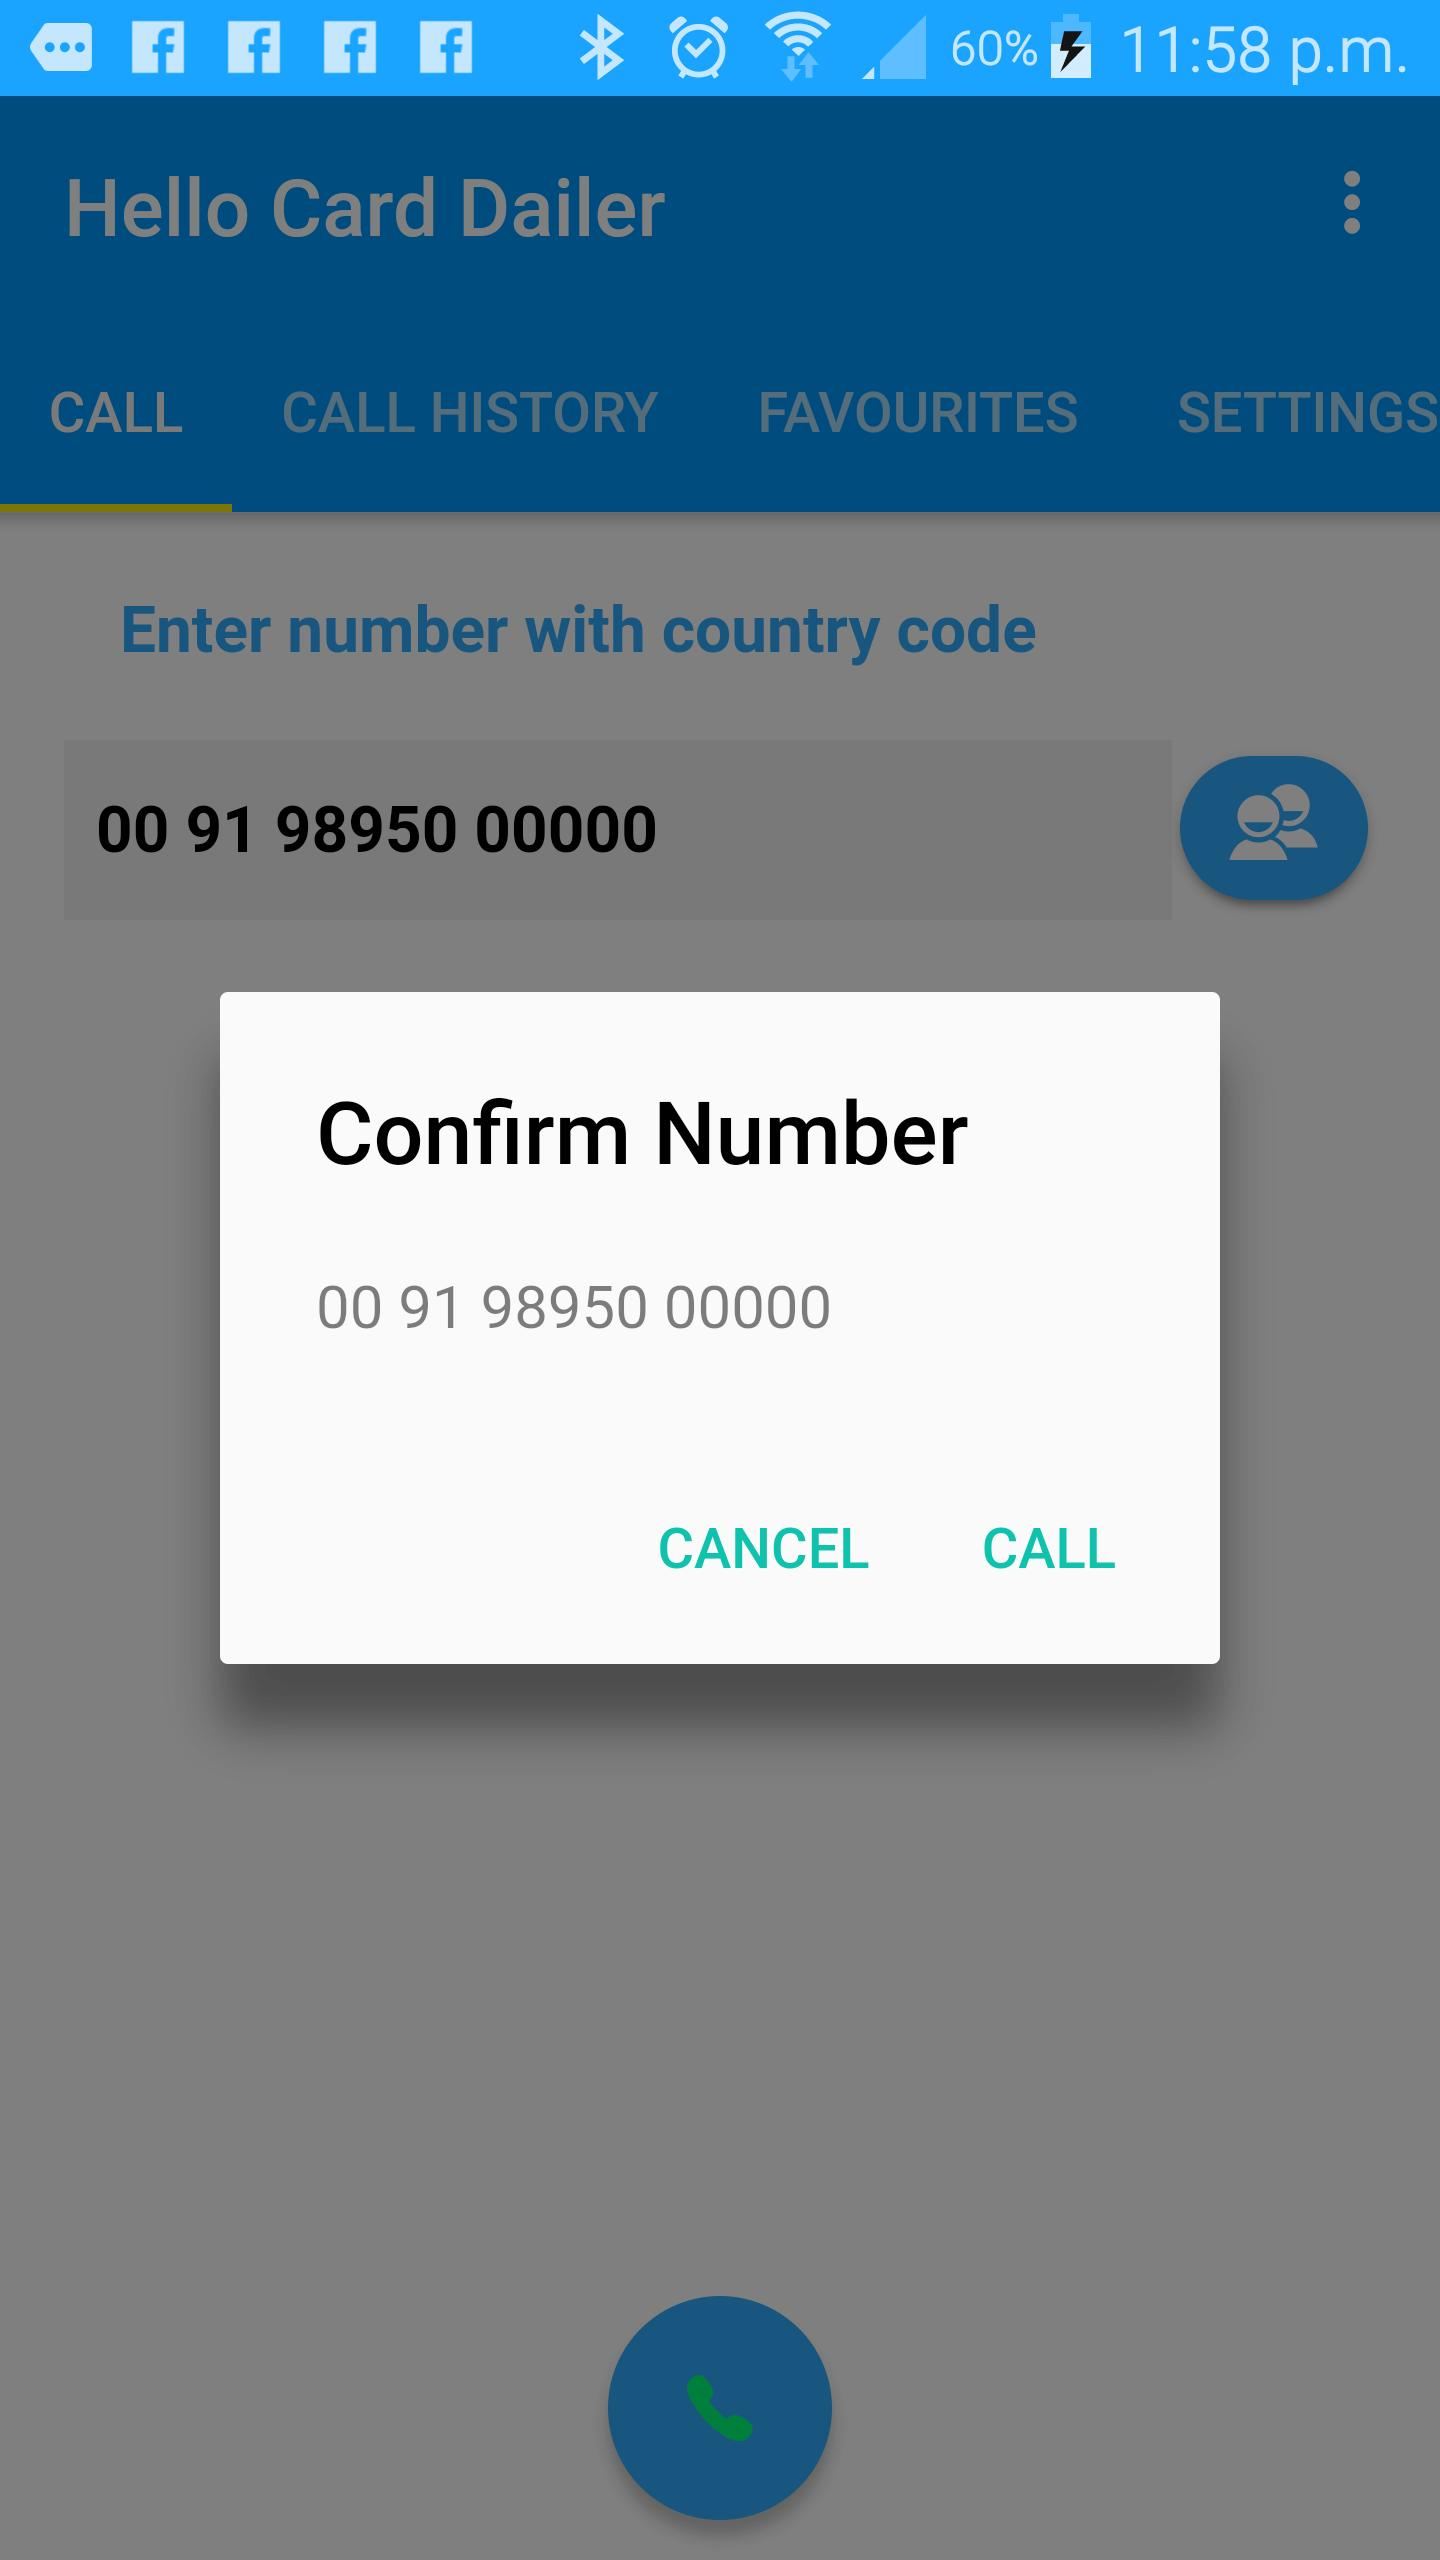 Hello Card Dialer for Android - APK Download